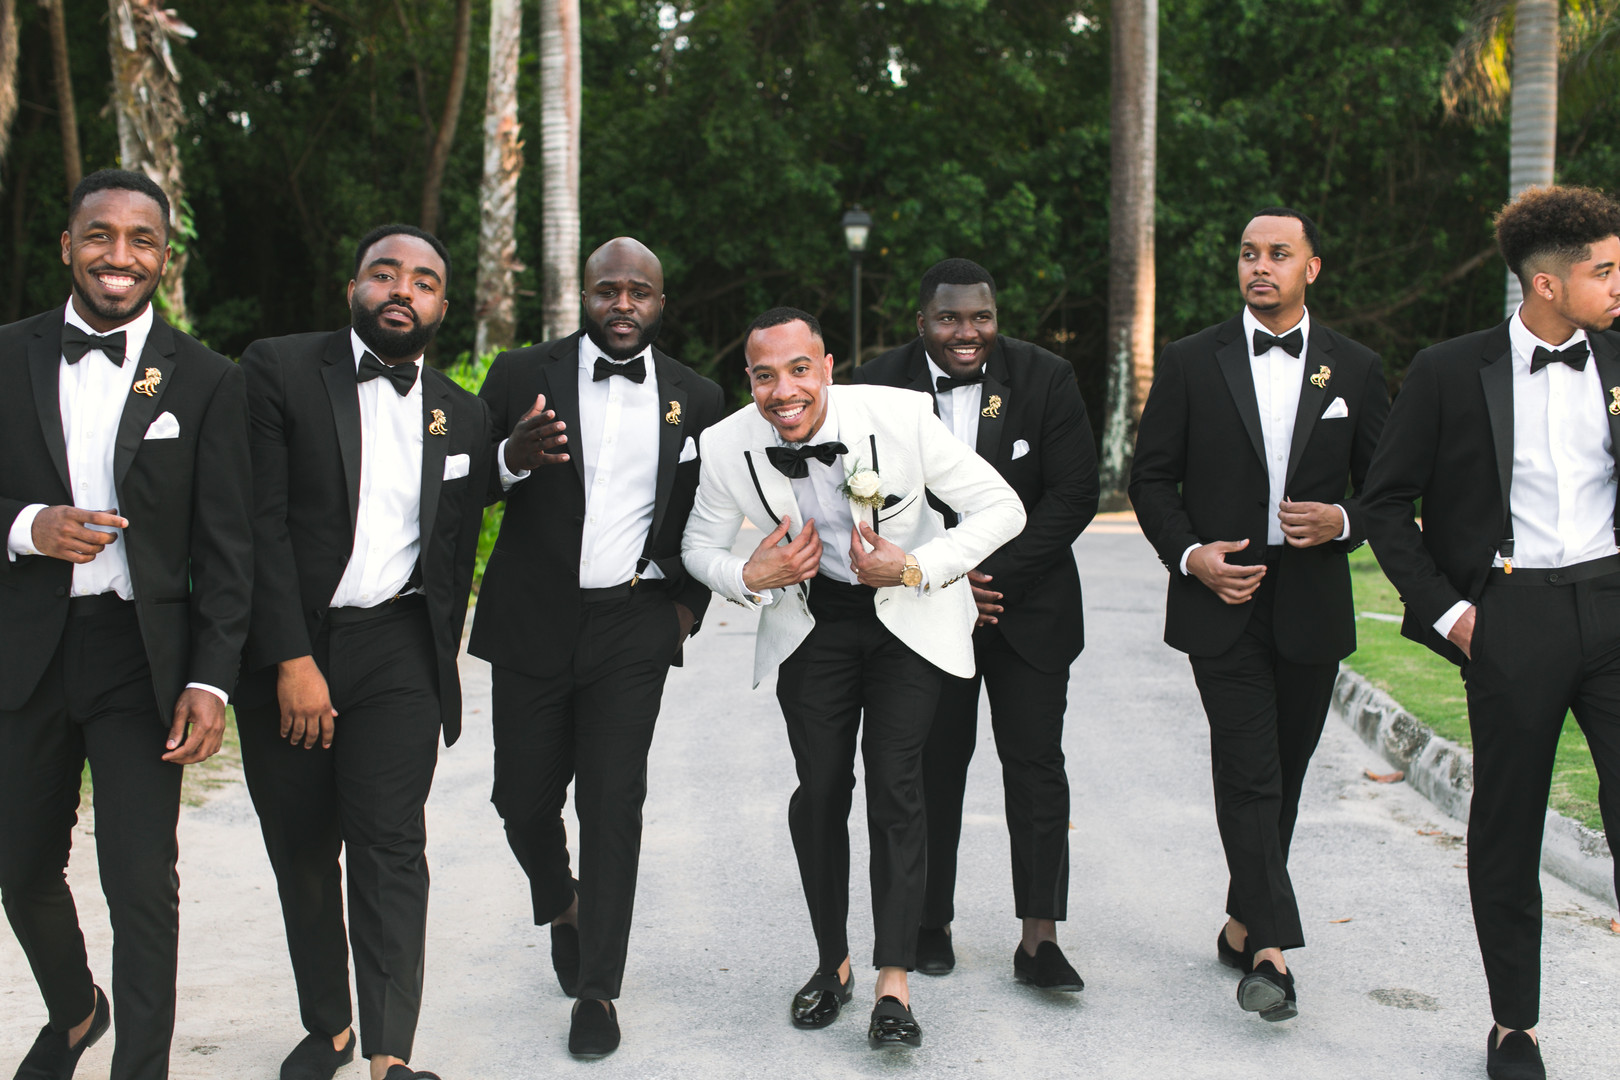 groom in white tux and groomsmen in black